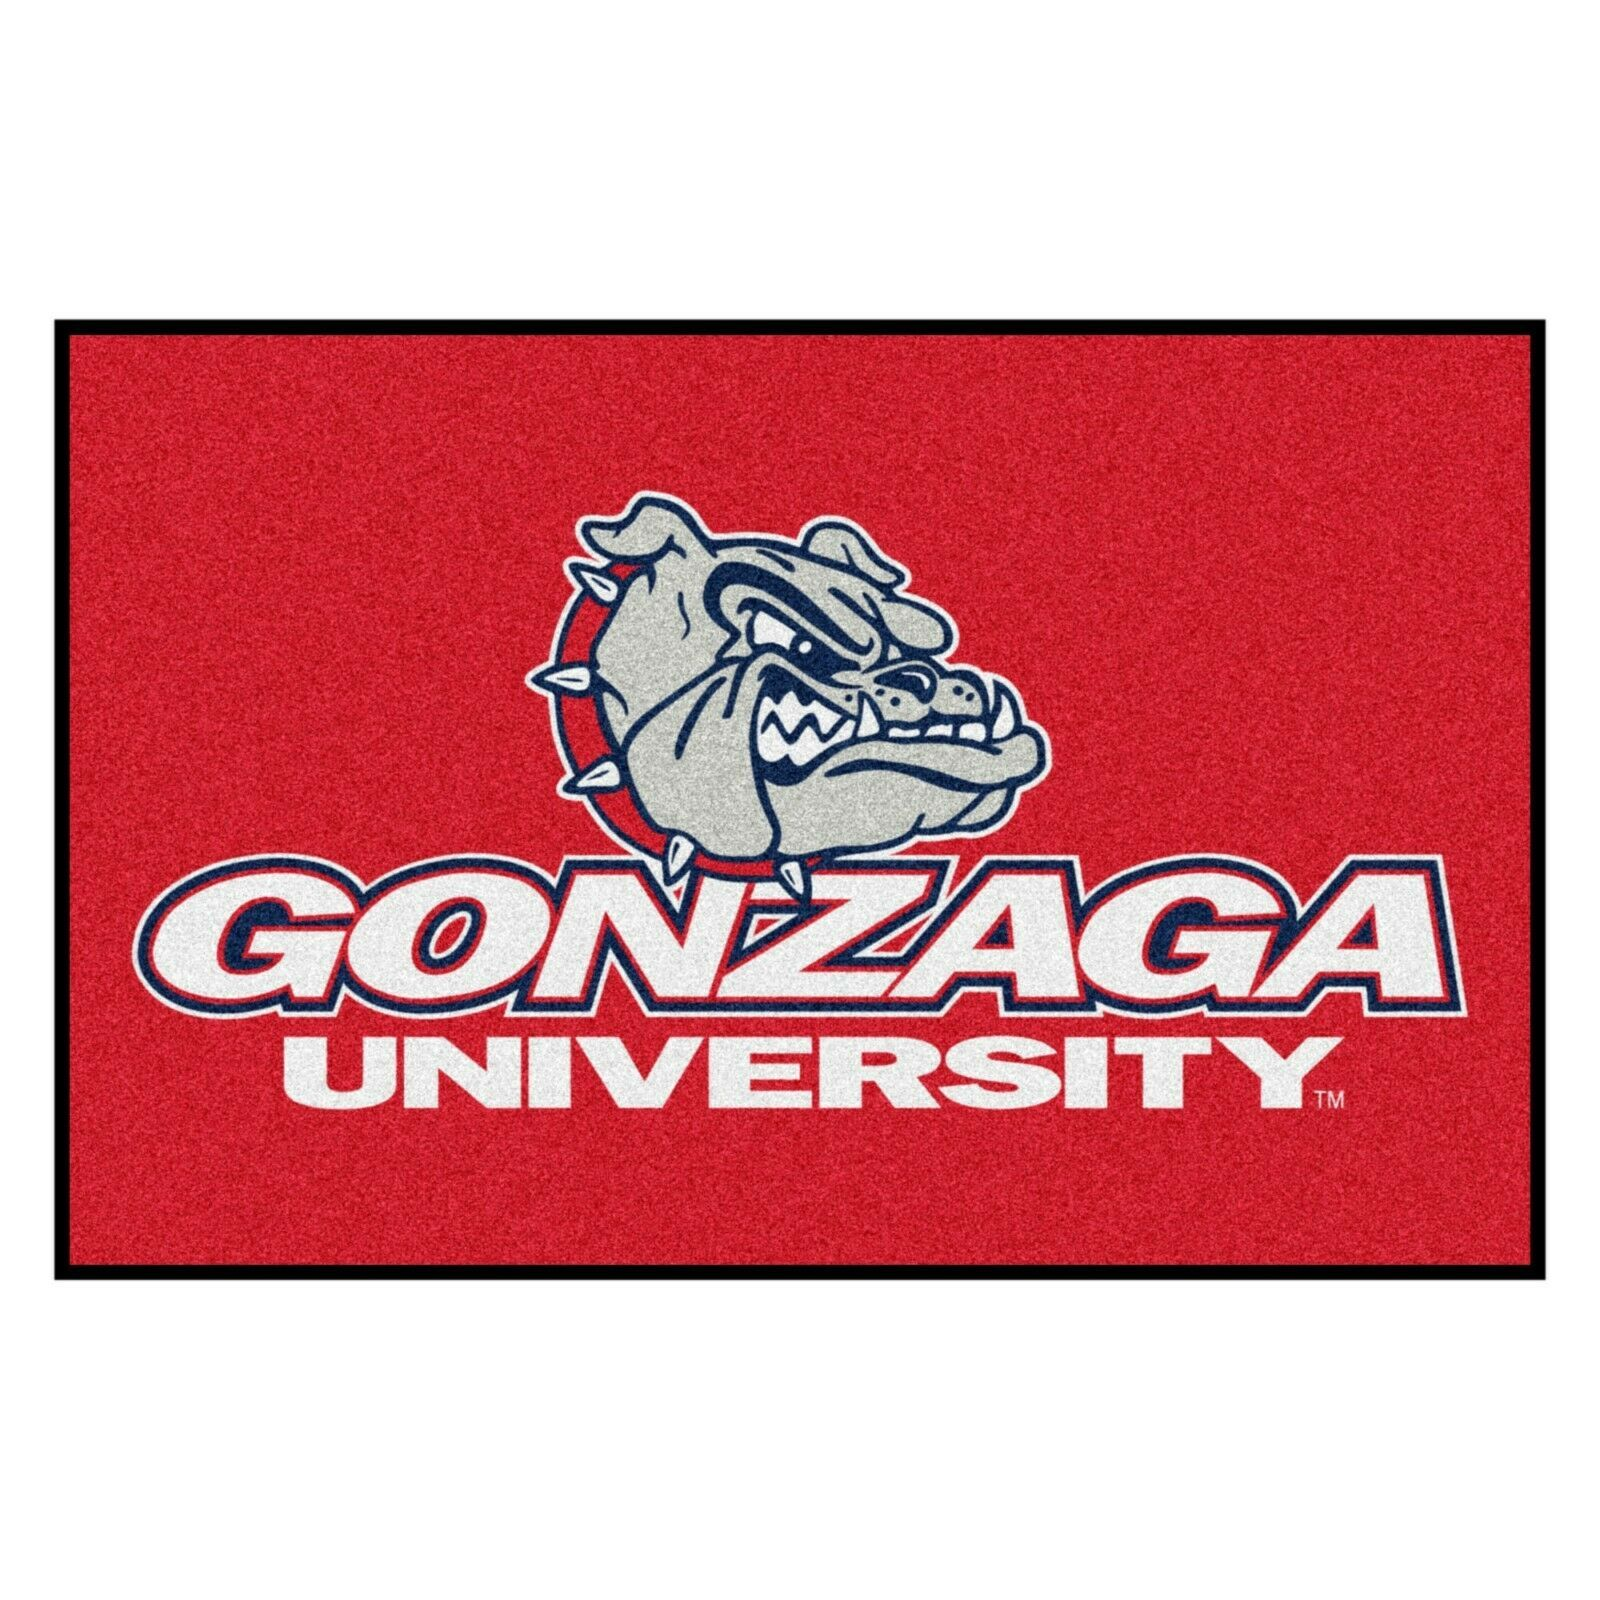 """Fanmats NCAA Gonzaga Bulldogs Red Starter Mat Area Rug 19""""x 30"""" 2-4 Day Delivery - $27.71"""